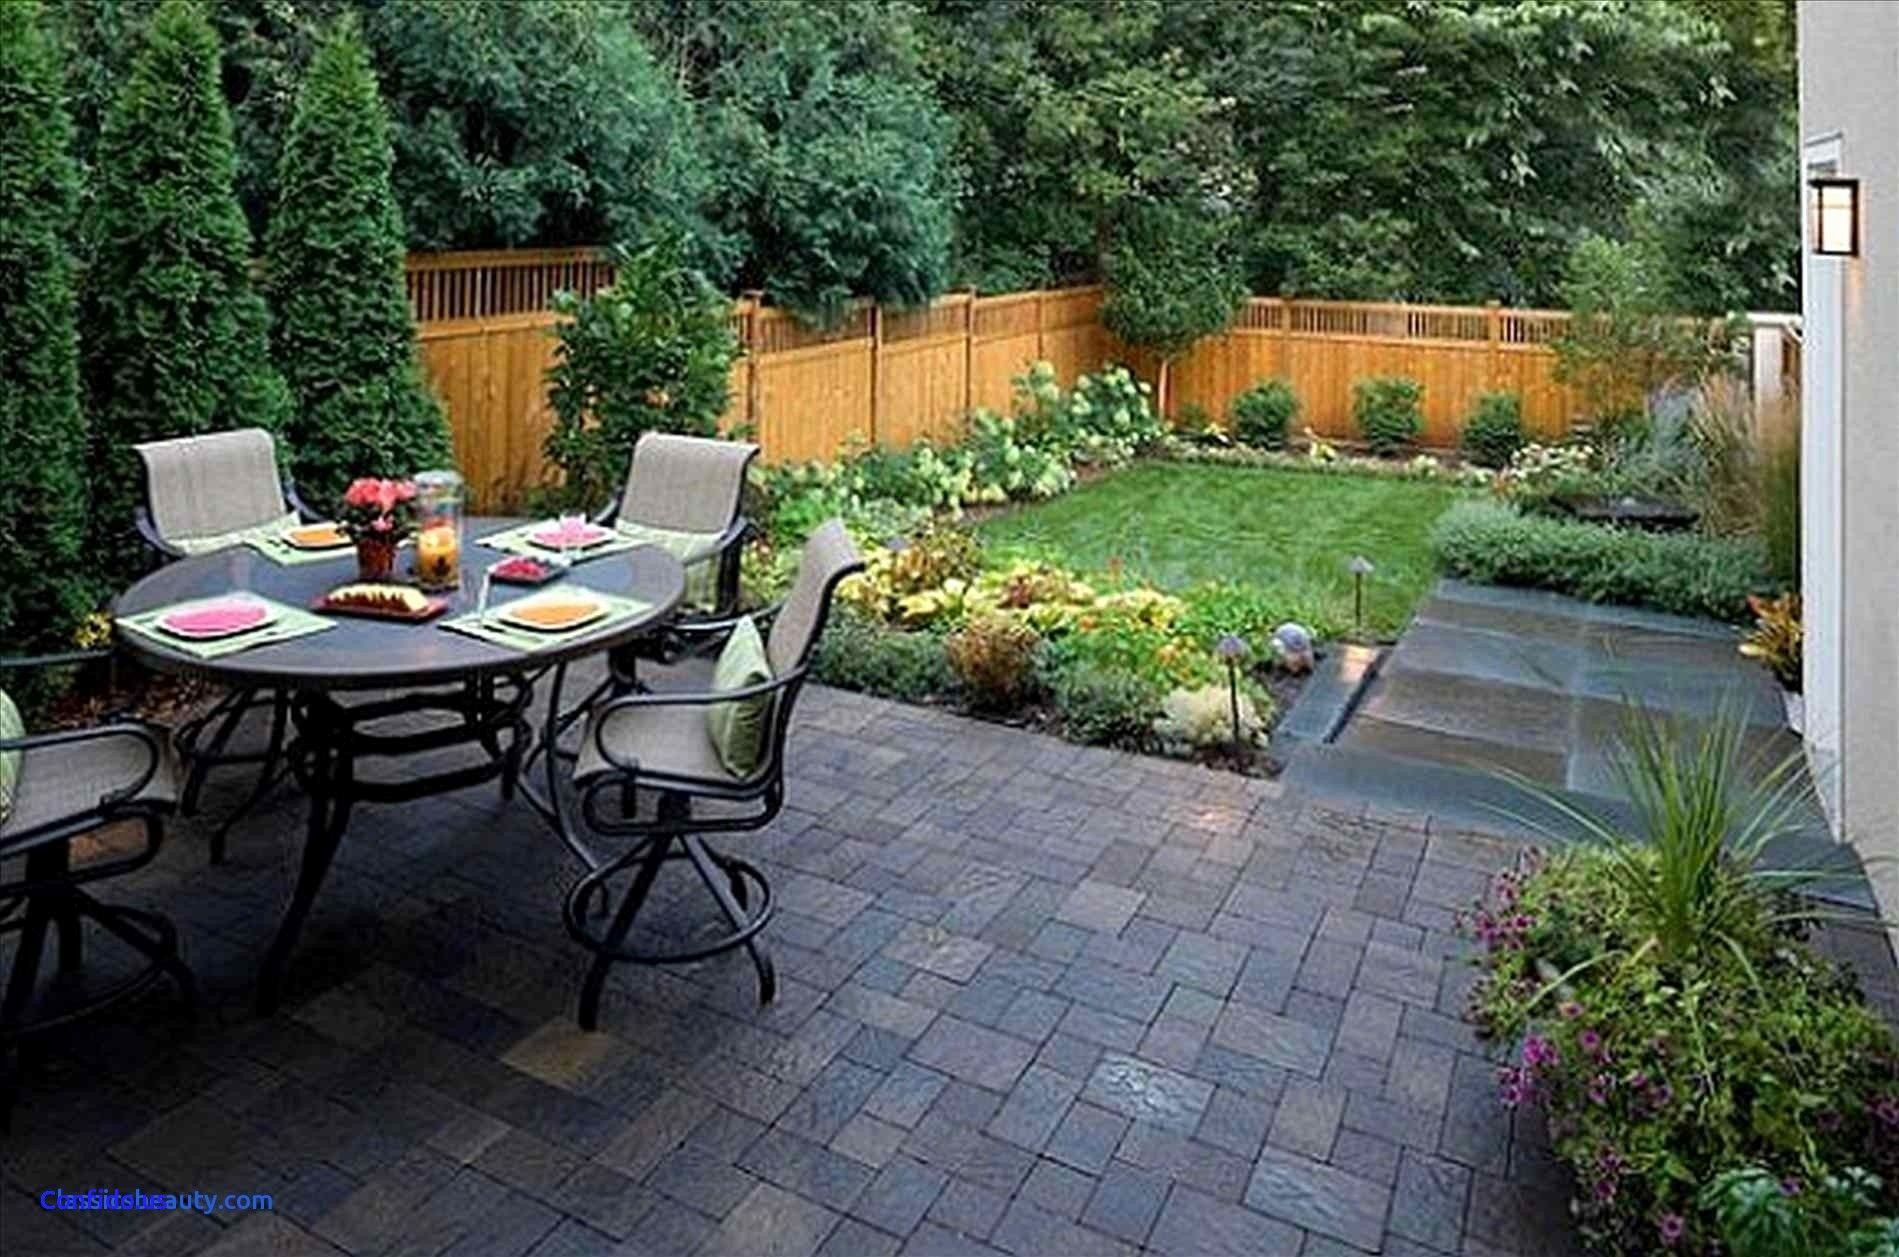 Backyard Design Tool Backyard Design Tool Unique Picture 39 Of 51 Landscape Design Tool B Small Yard Landscaping Backyard Garden Layout Small Backyard Gardens Backyard garden design tool